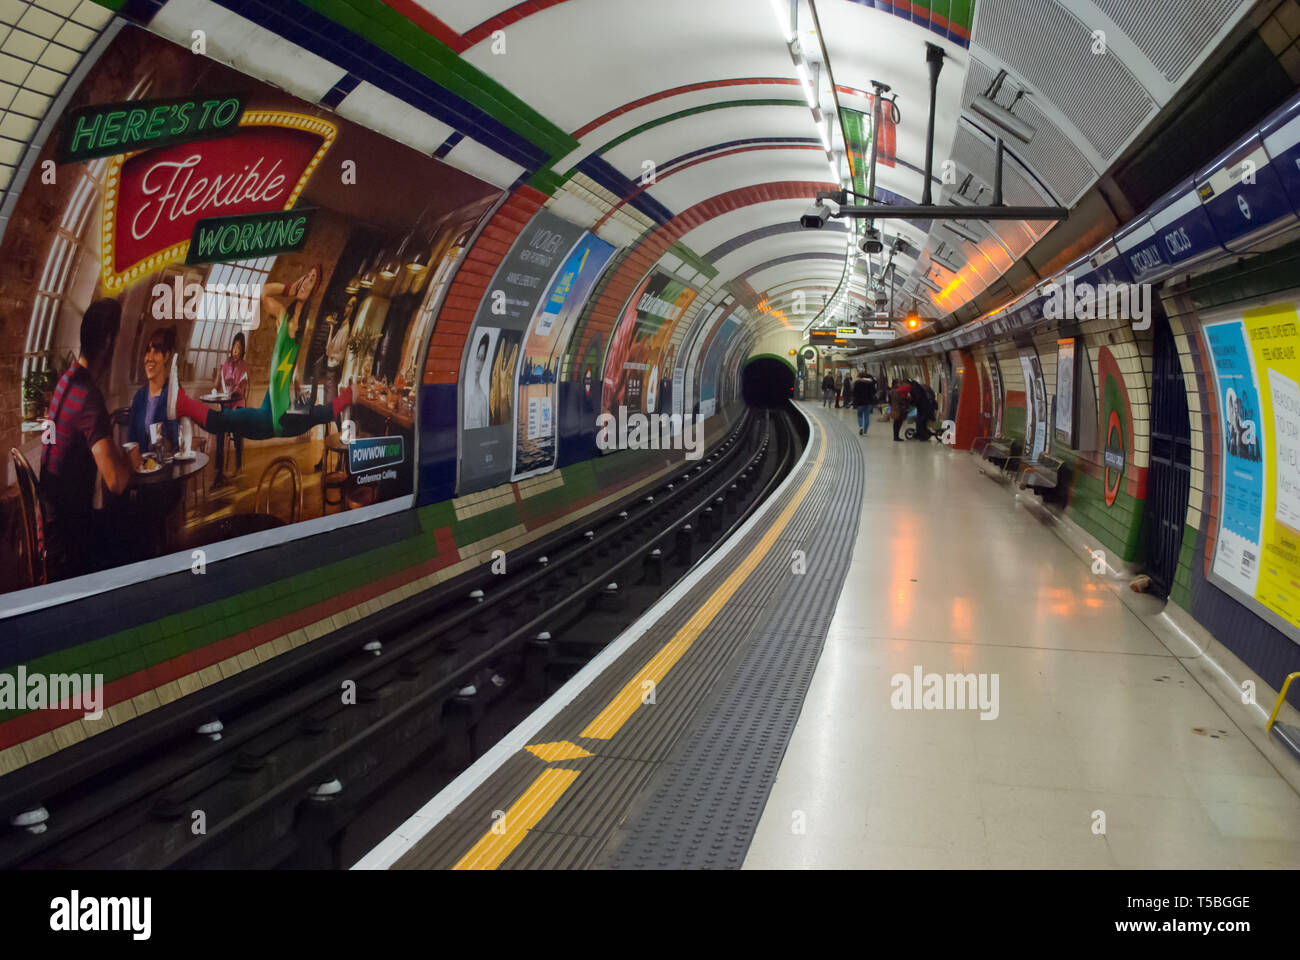 LONDON - JANUARY 26: The piccadilly tube station is one of the most famous london on january 24, 2016 in London, UK. - Stock Image